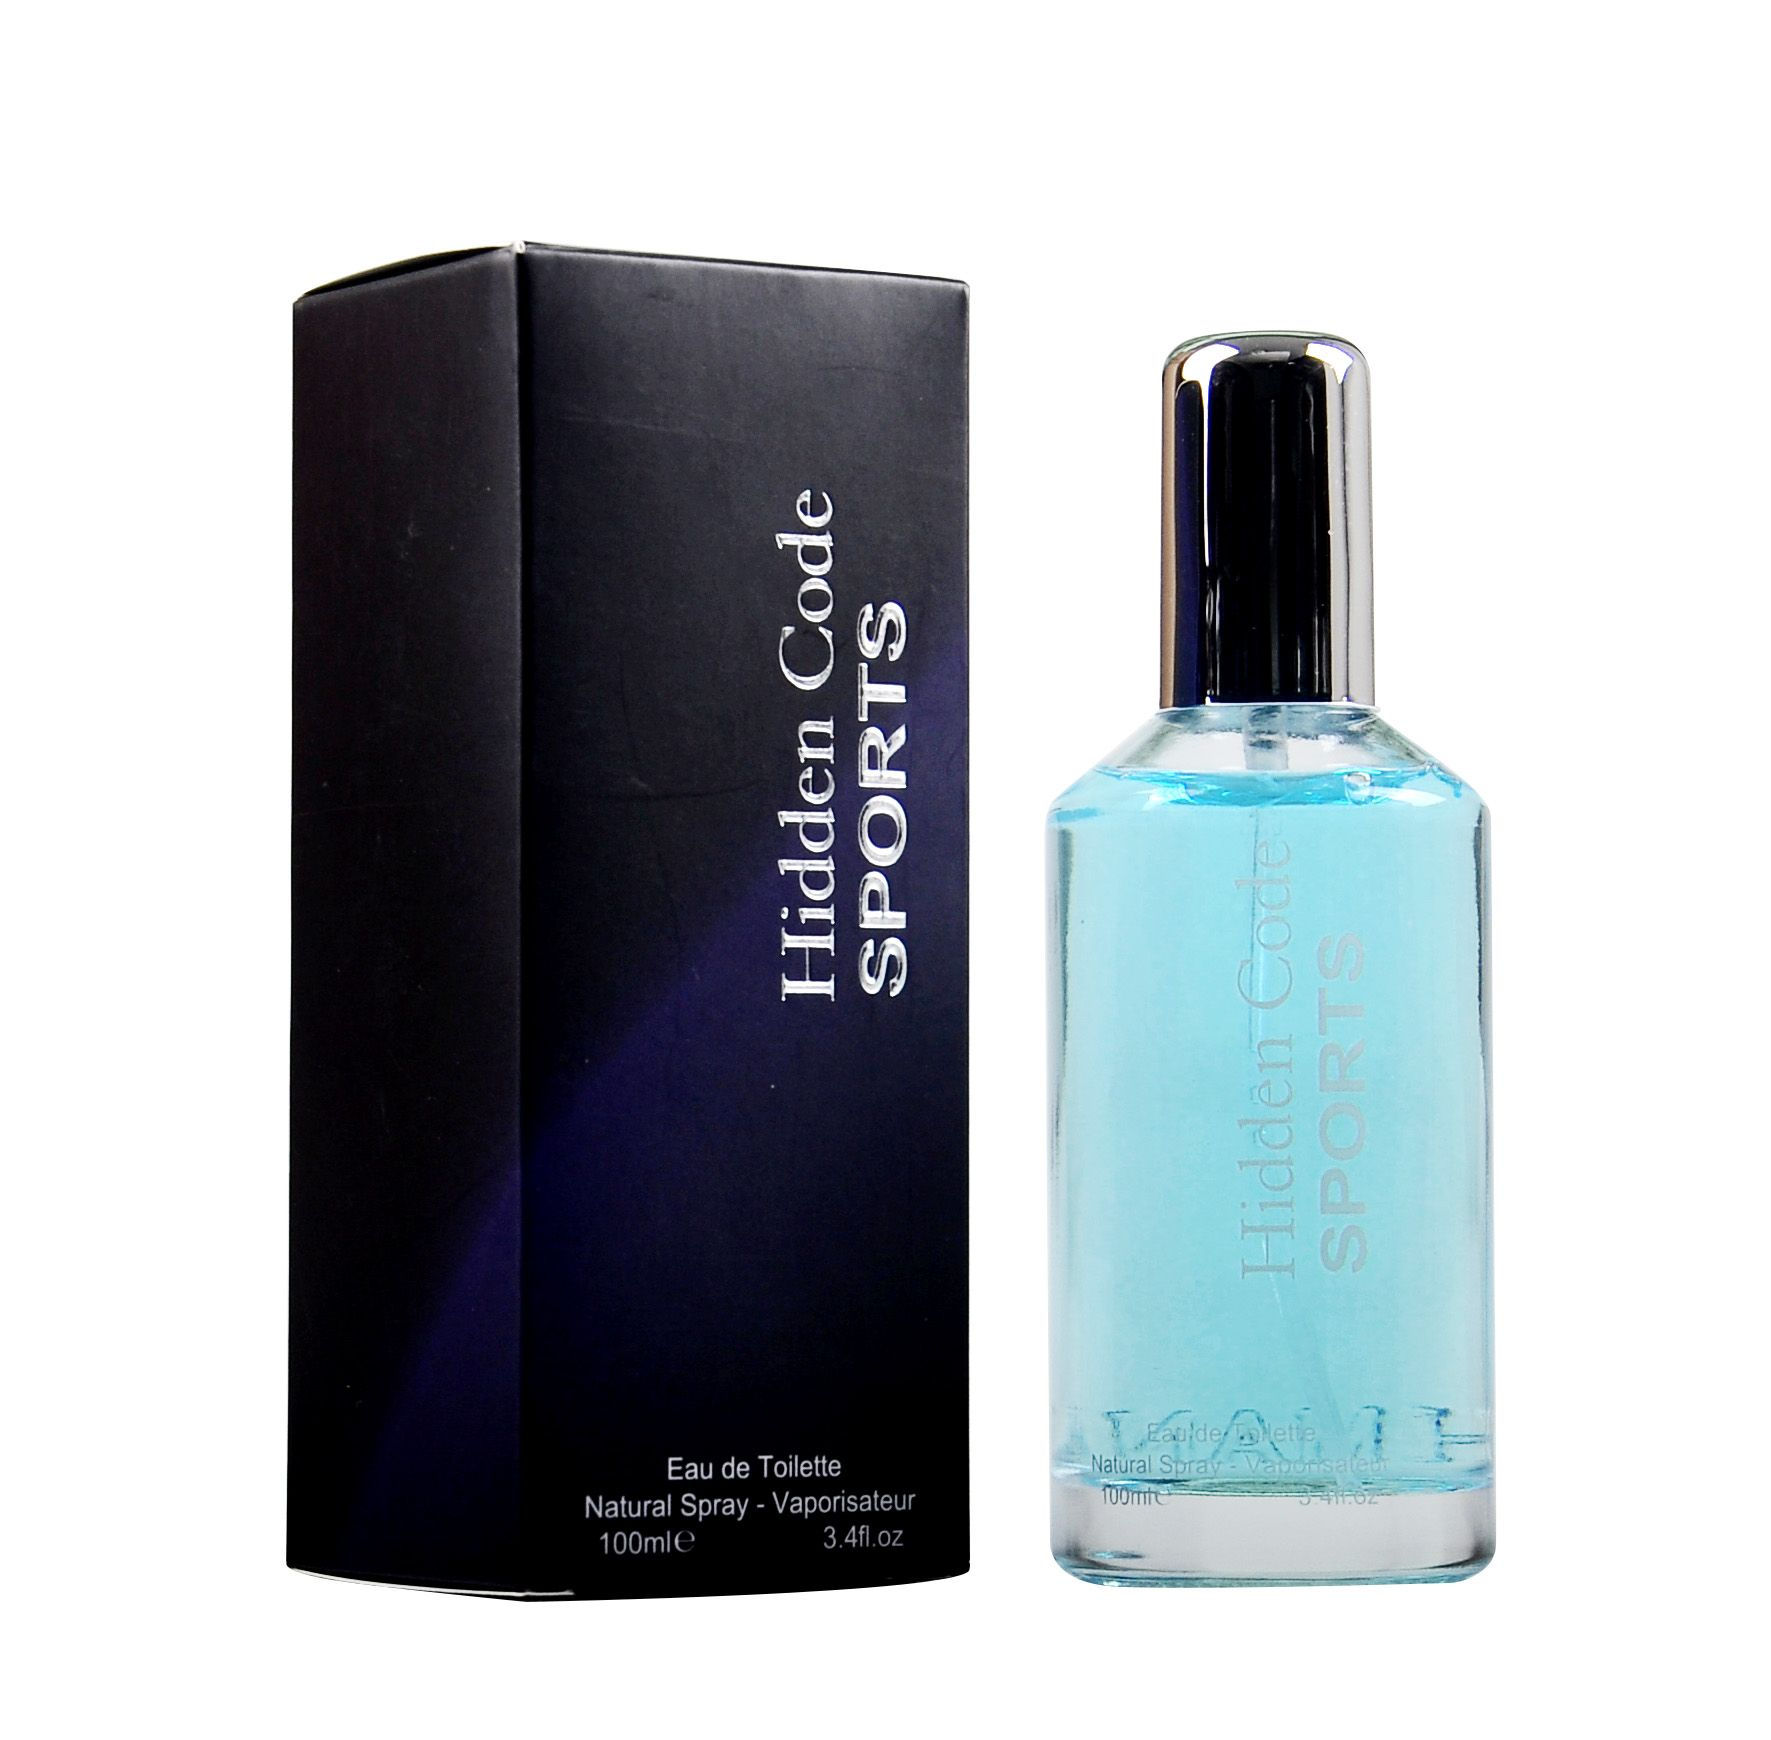 Hidden Code Sports Pour Homme e100ml FP8078